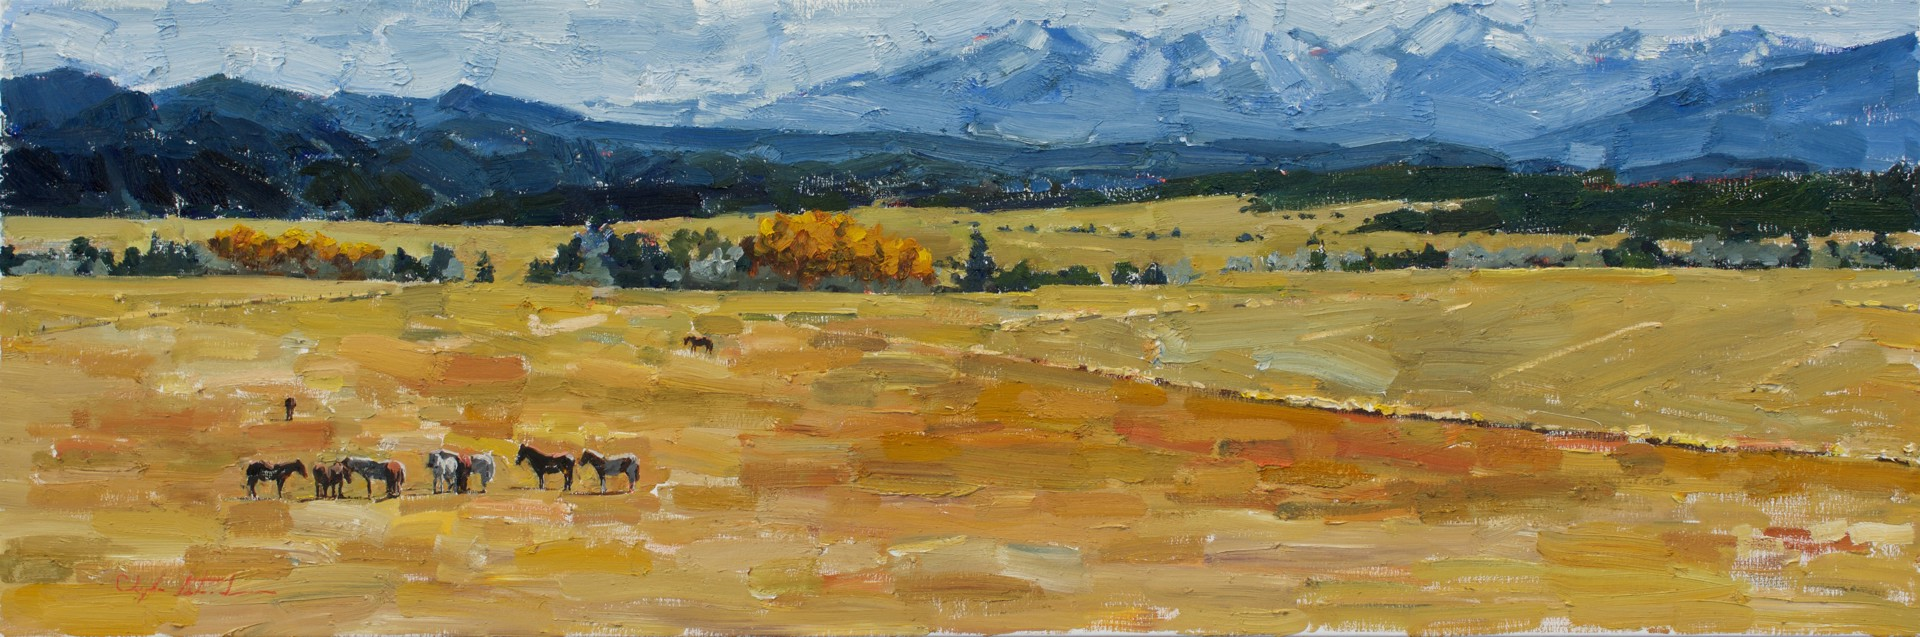 Arkansas River Valley by Clyde Steadman